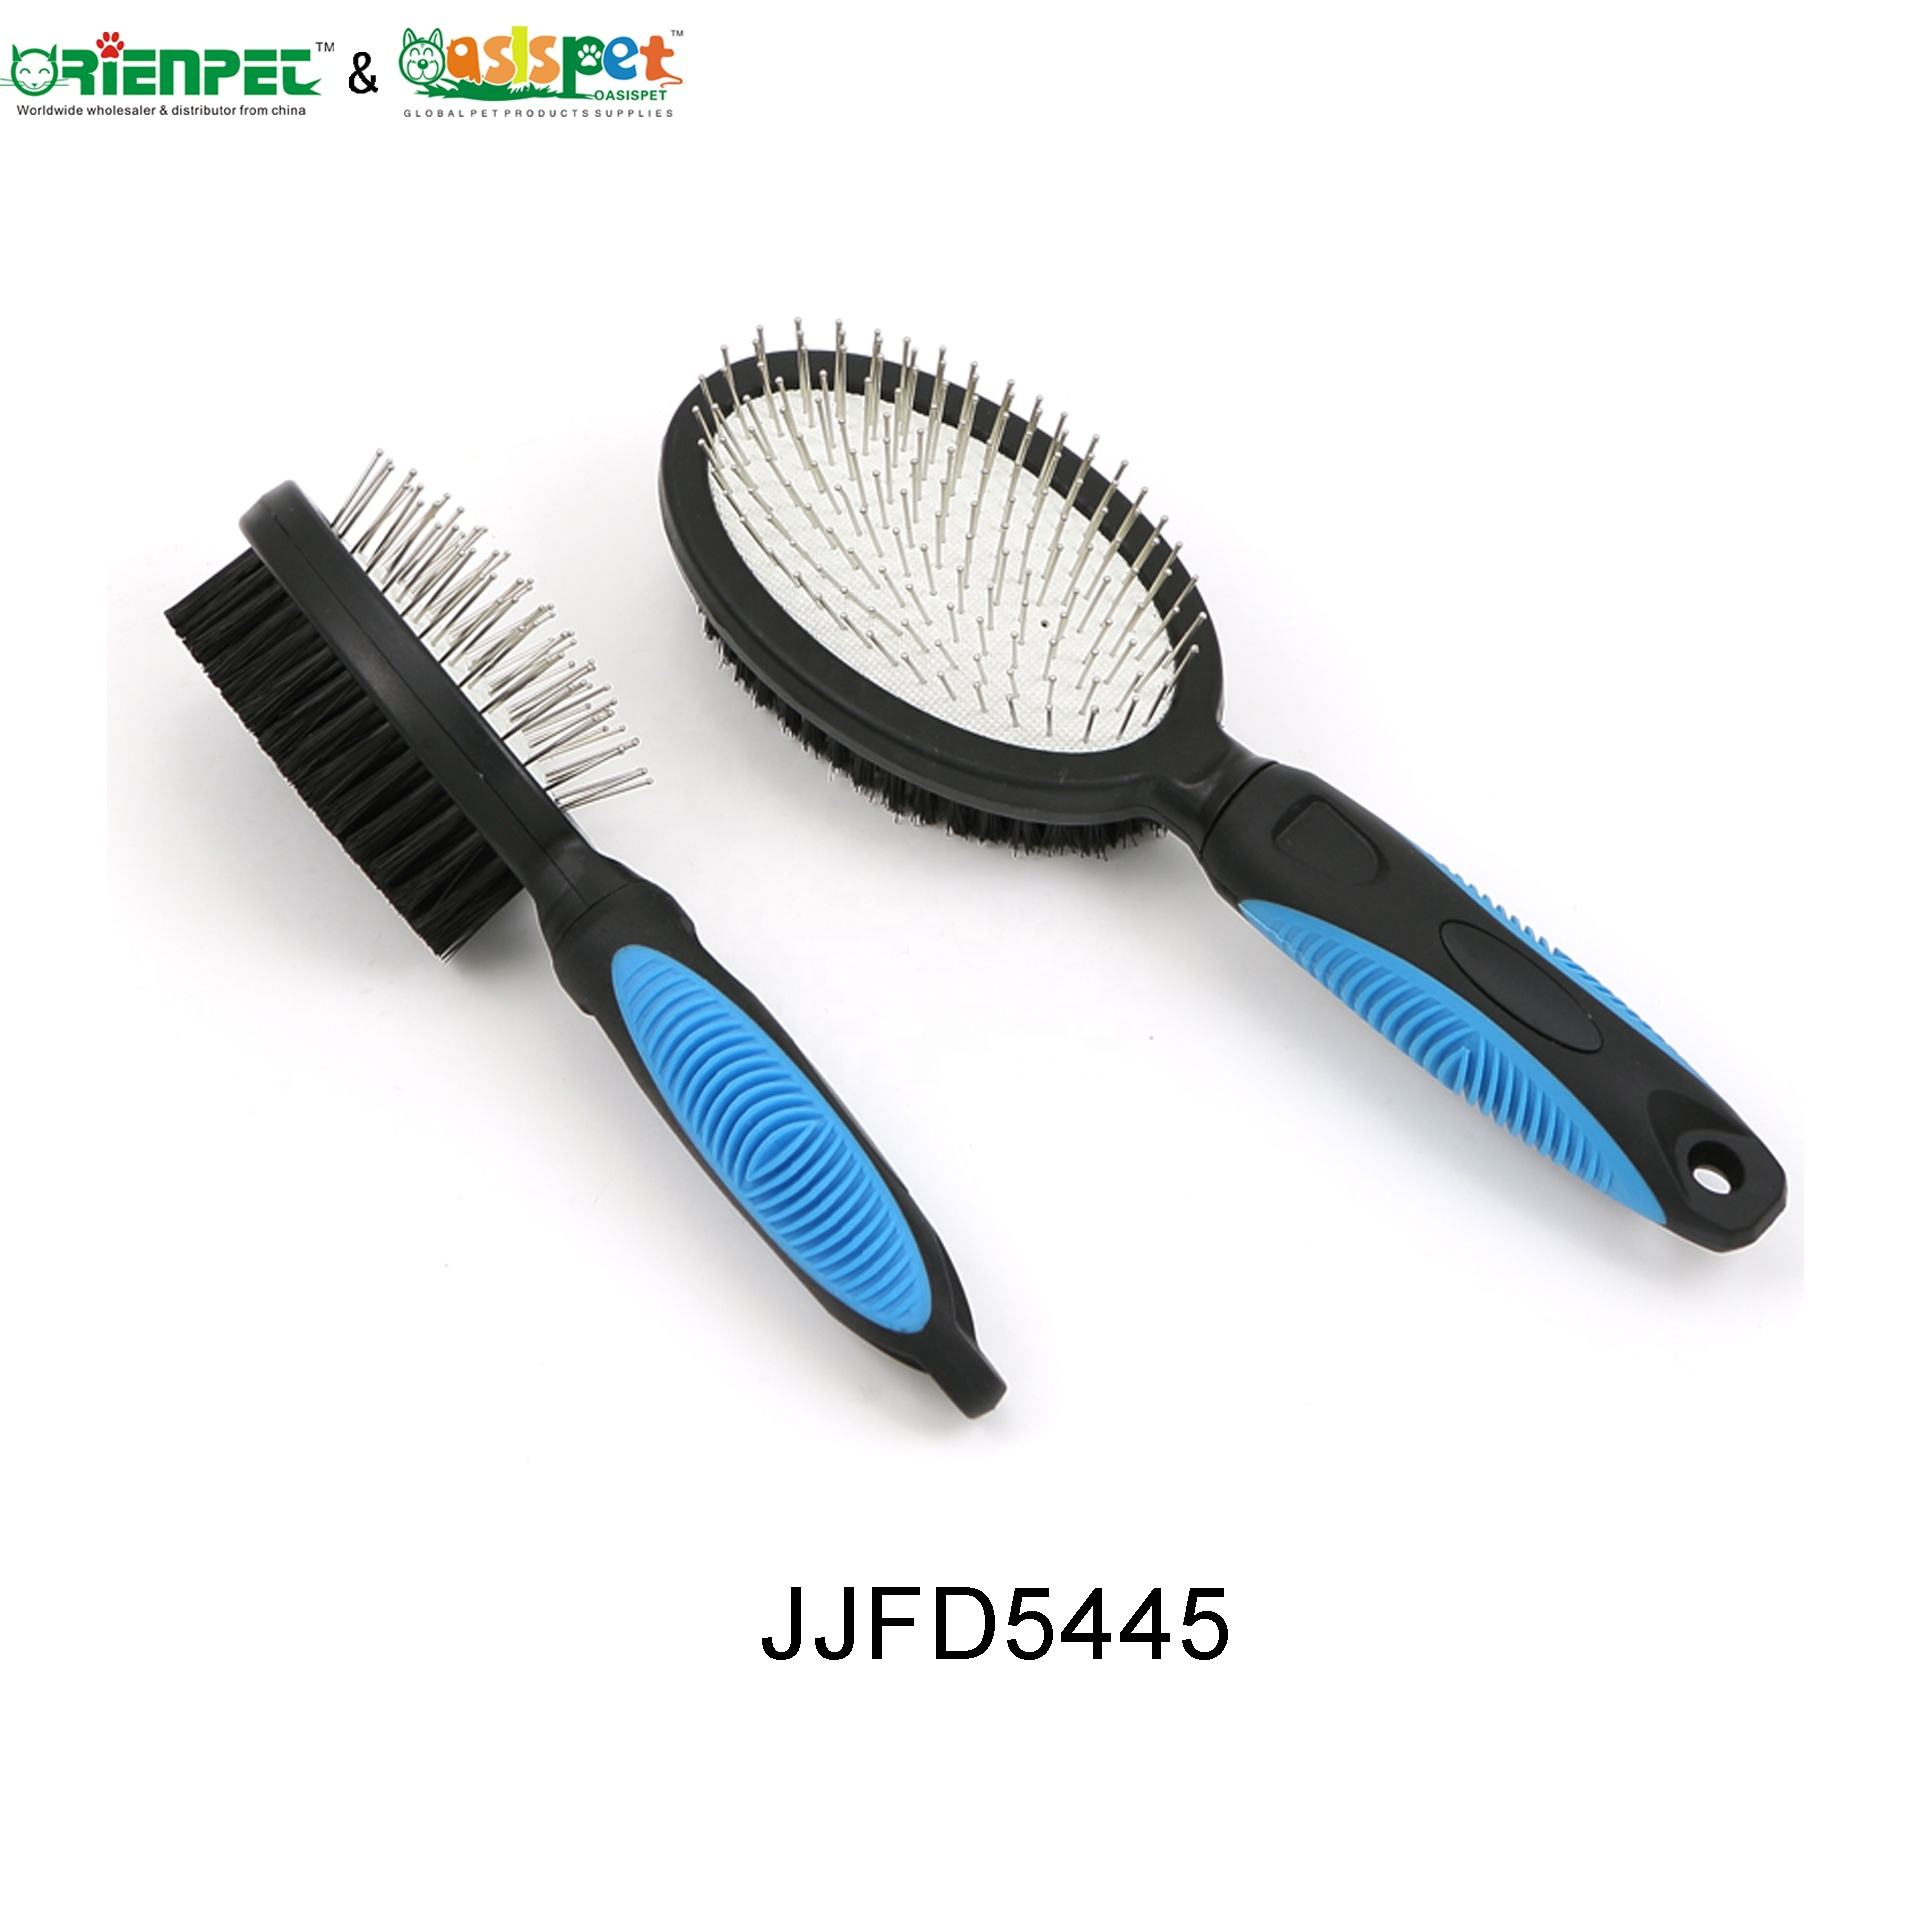 Groom ORIENPET OASISPET Pet Dog Comb Double Pin Brush JJFD5445 L Pet Grooming Tool